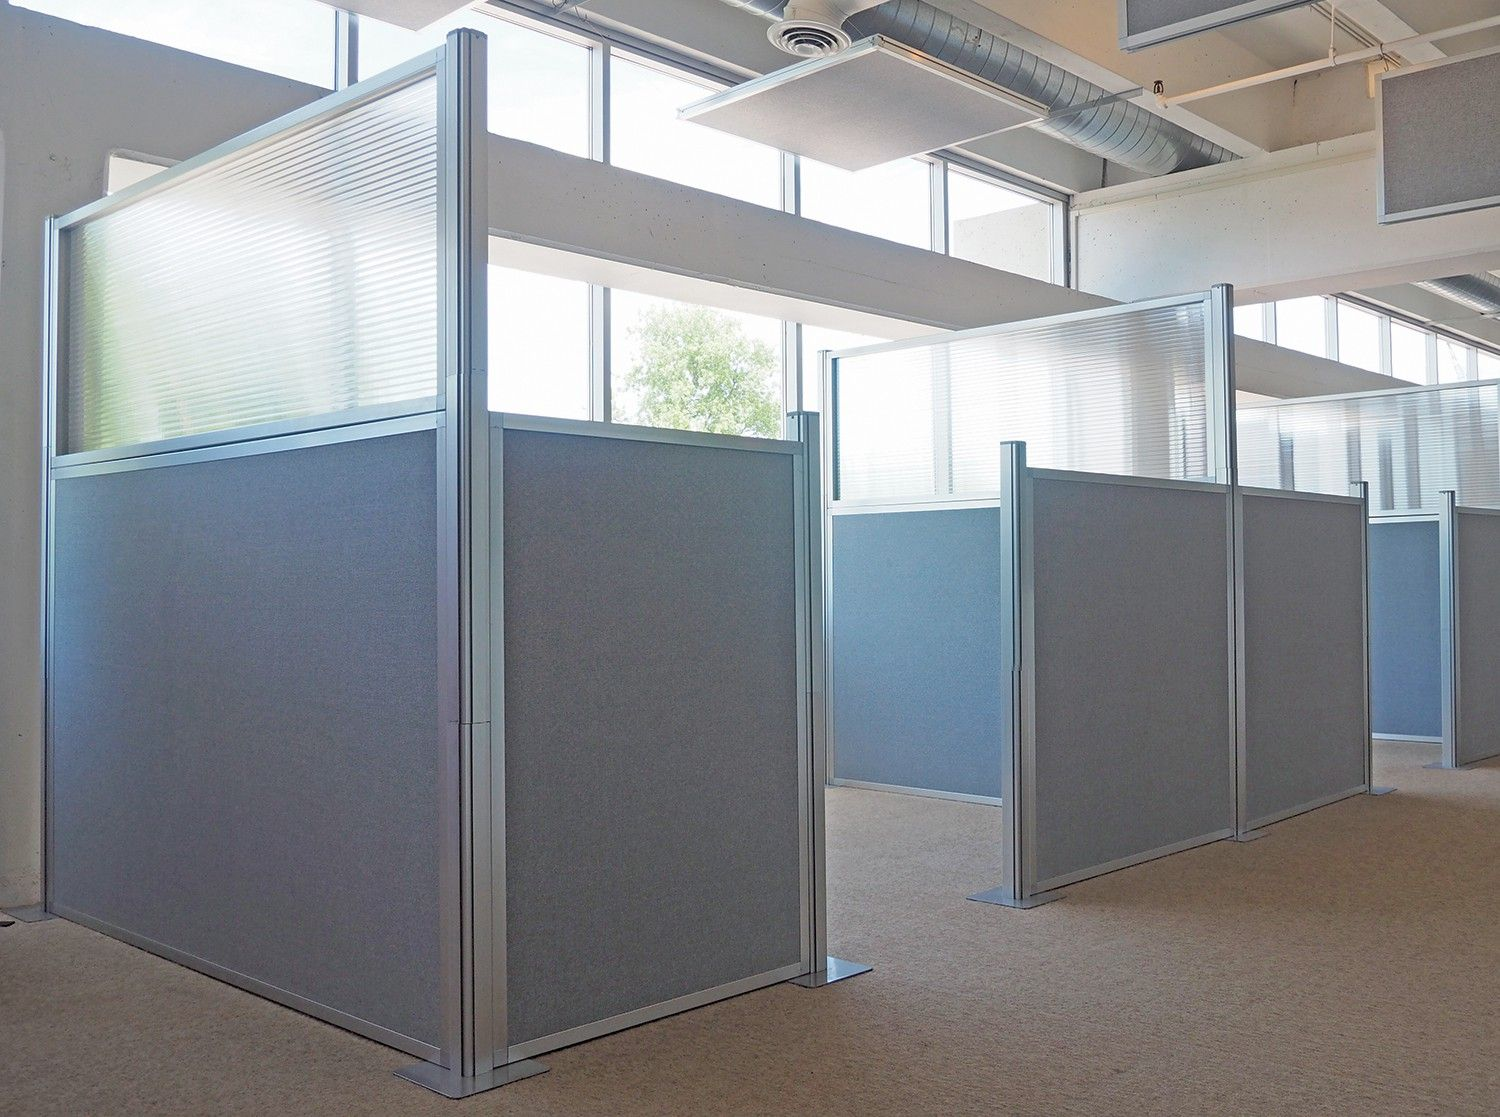 Diy office cubicle door - Find This Pin And More On Office Partitions Hush Panel Diy Cubicle